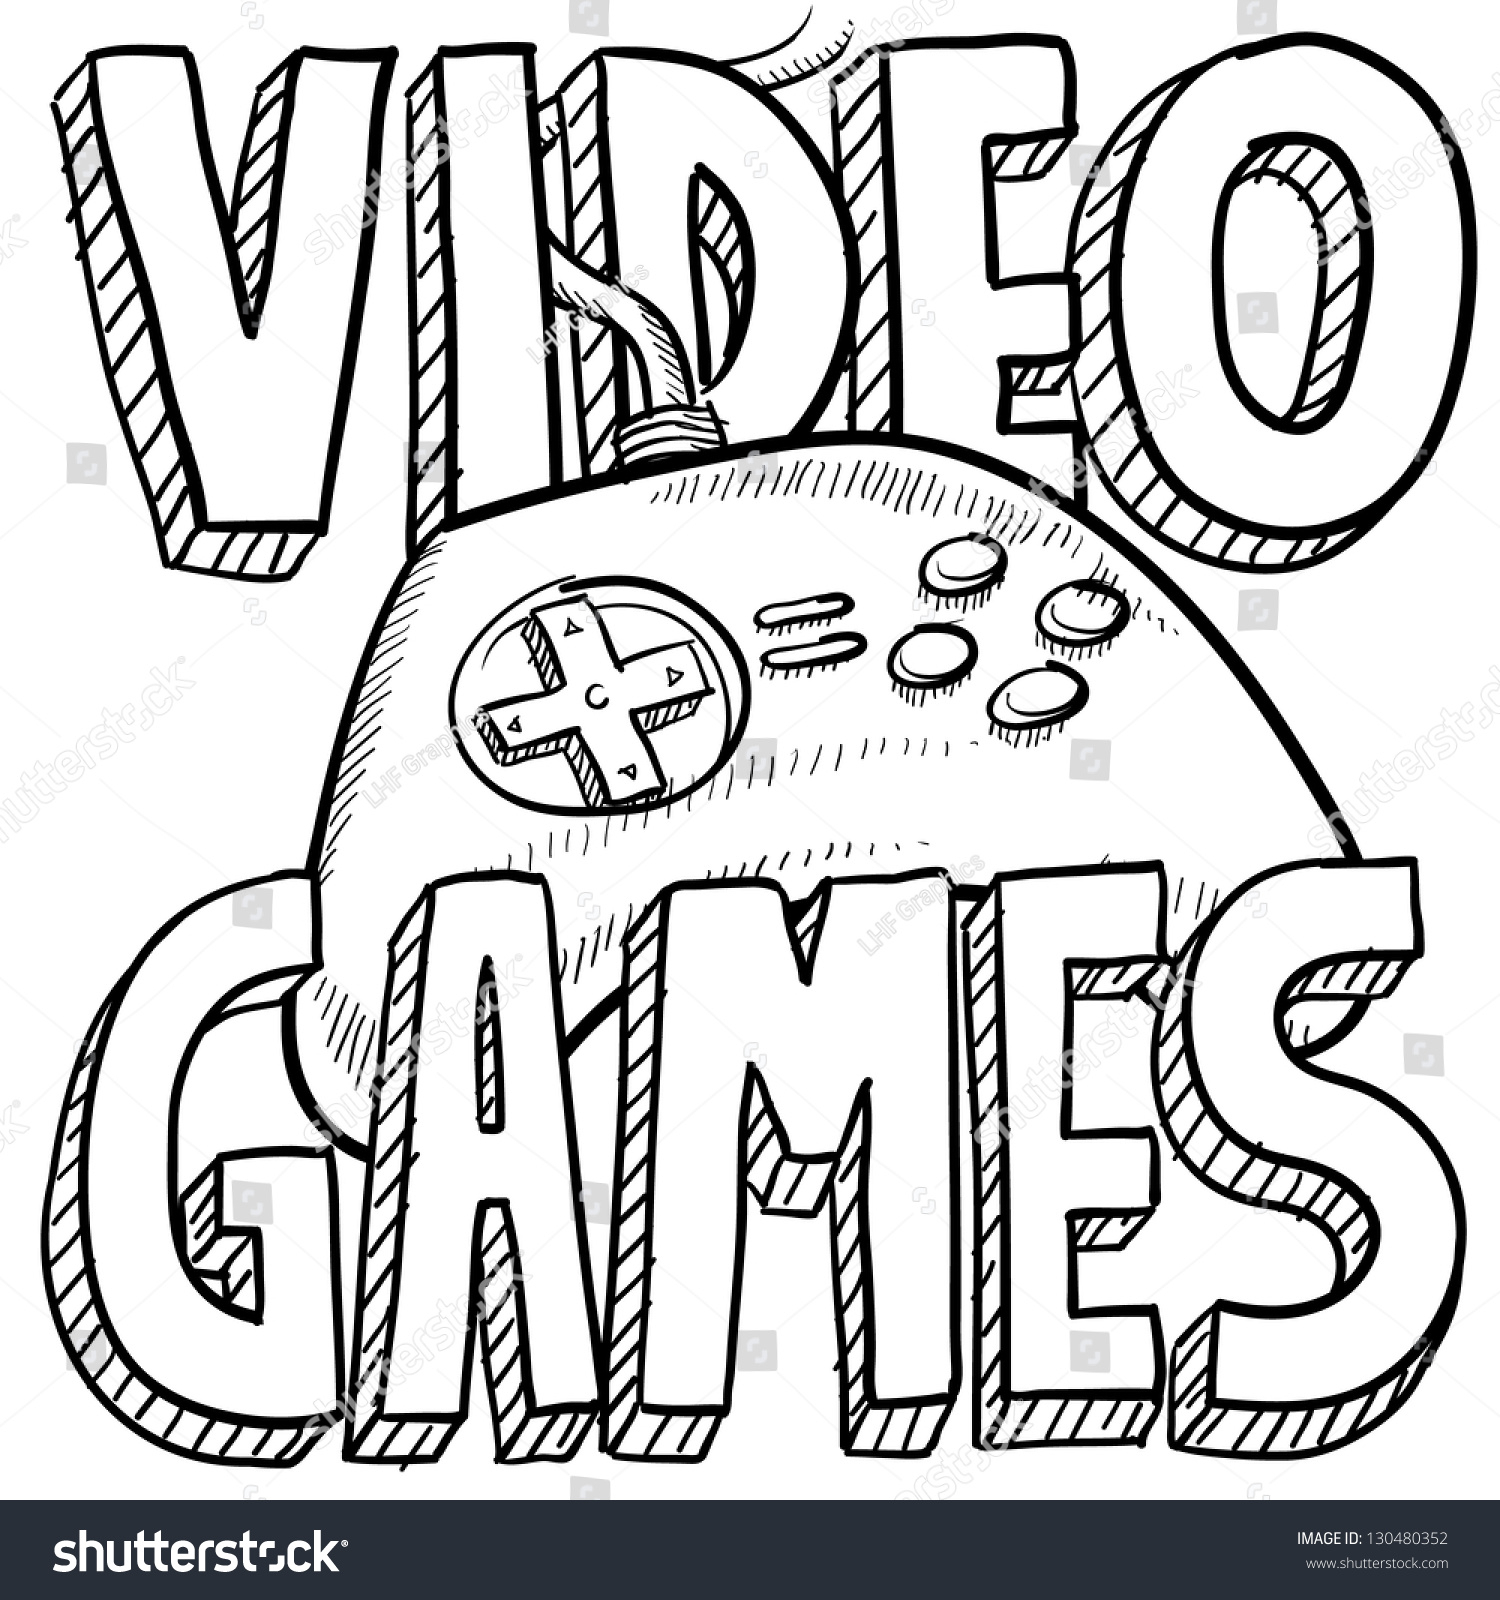 1500x1600 Doodle Drawing Games Doodle Style Video Games Sports Illustration